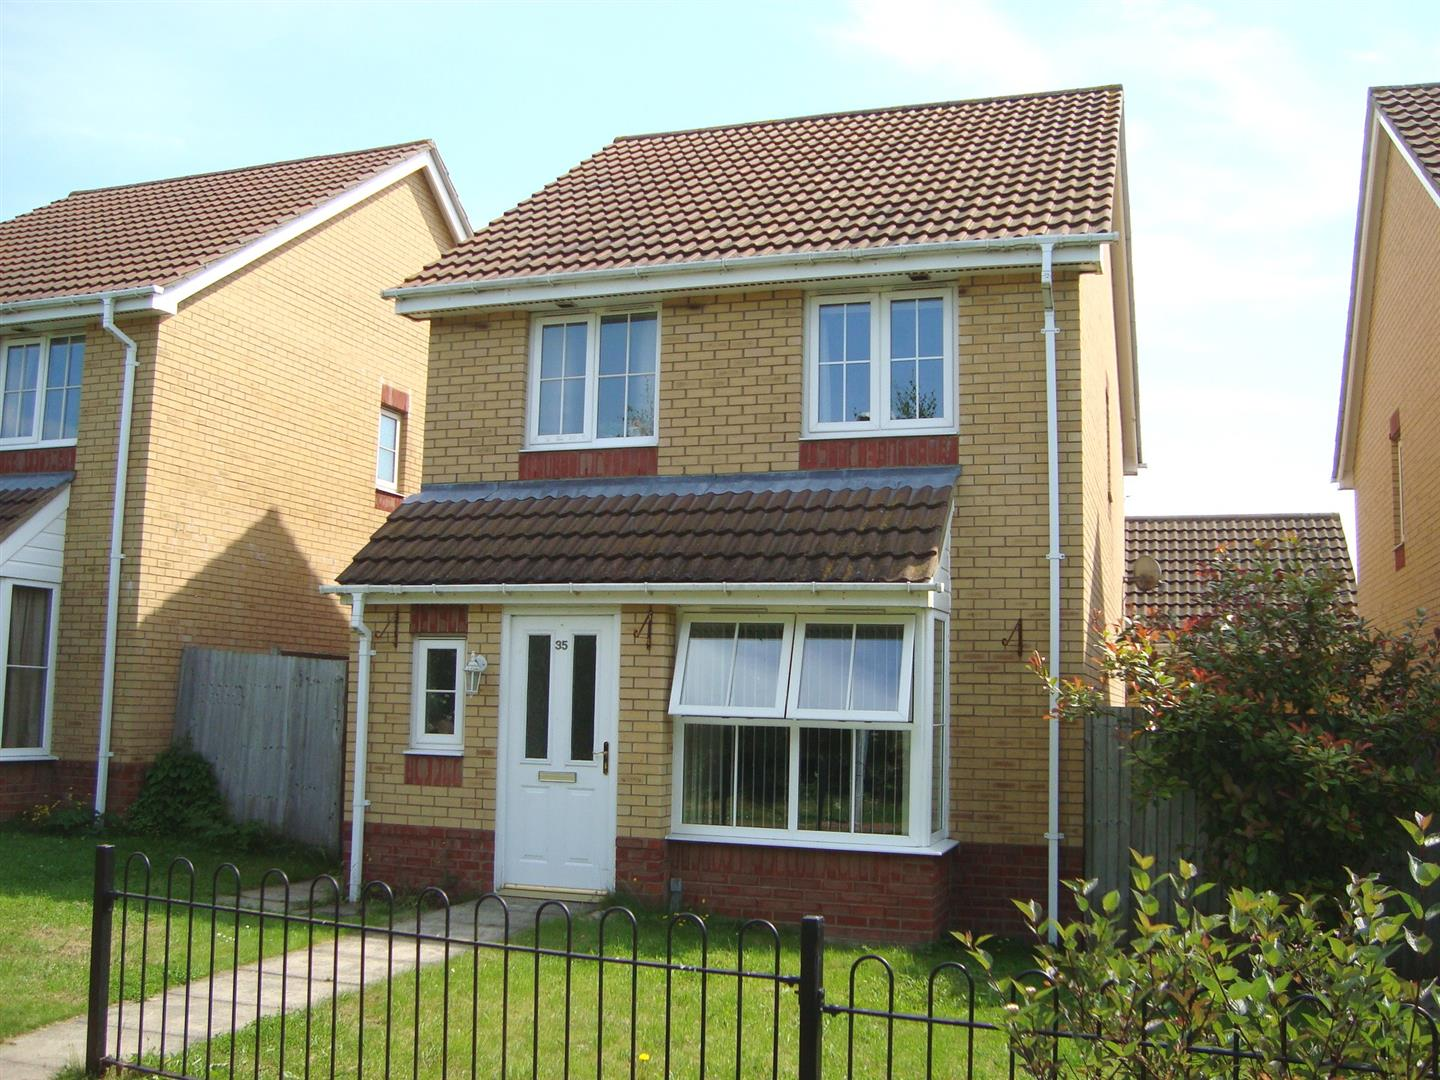 3 Bedrooms Detached House for sale in Farriers Way, Houghton Regis